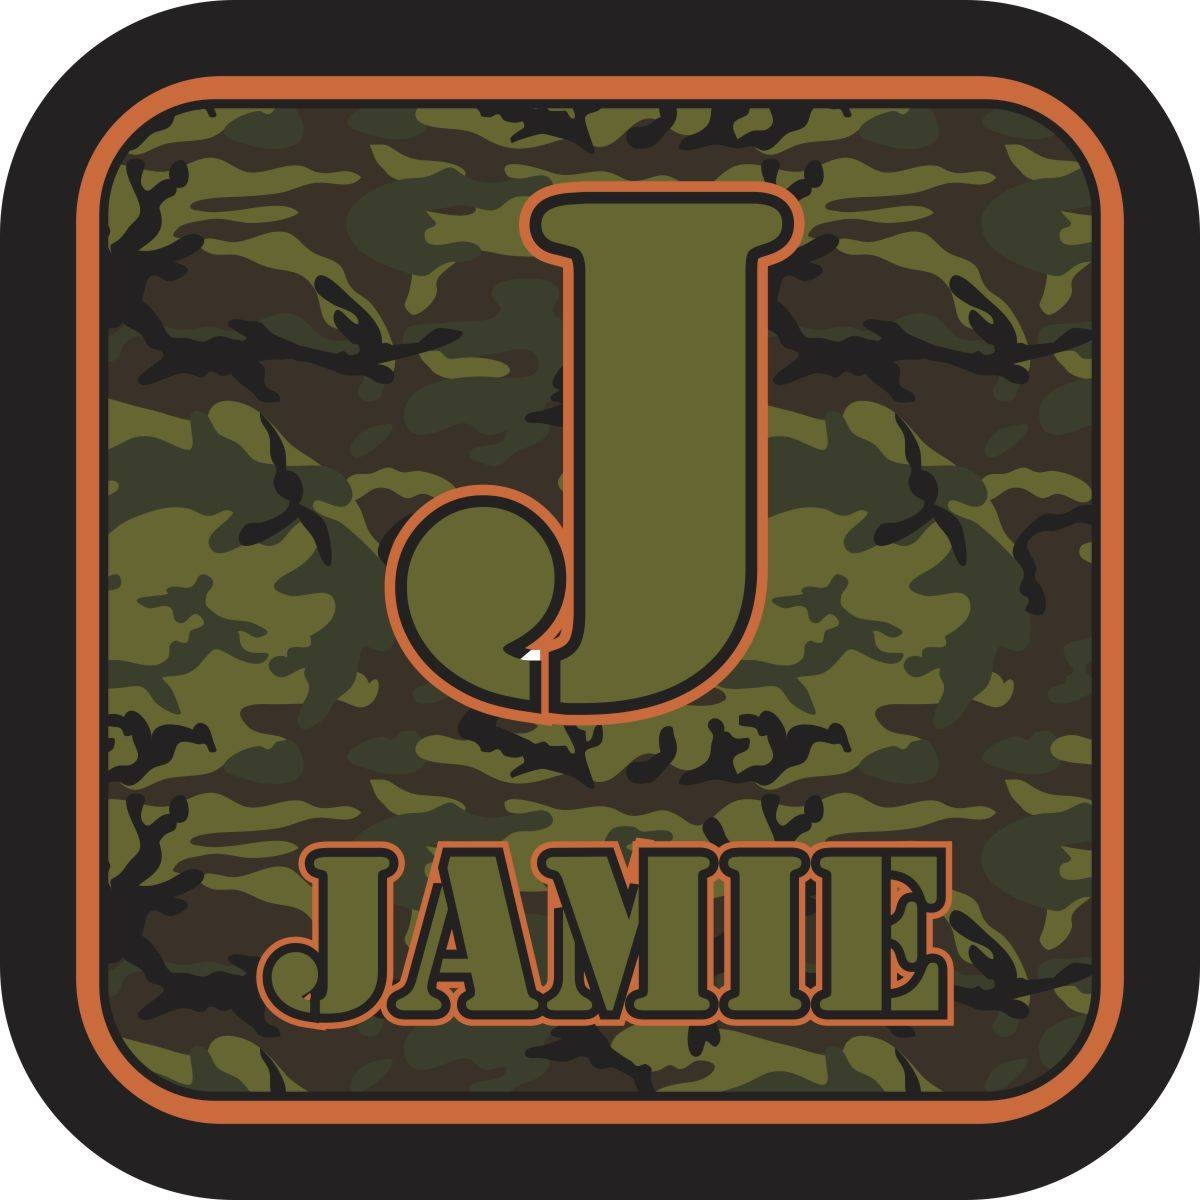 Personalized Green Camo Wall Art | Baby Milano With Latest Camouflage Wall Art (View 11 of 20)